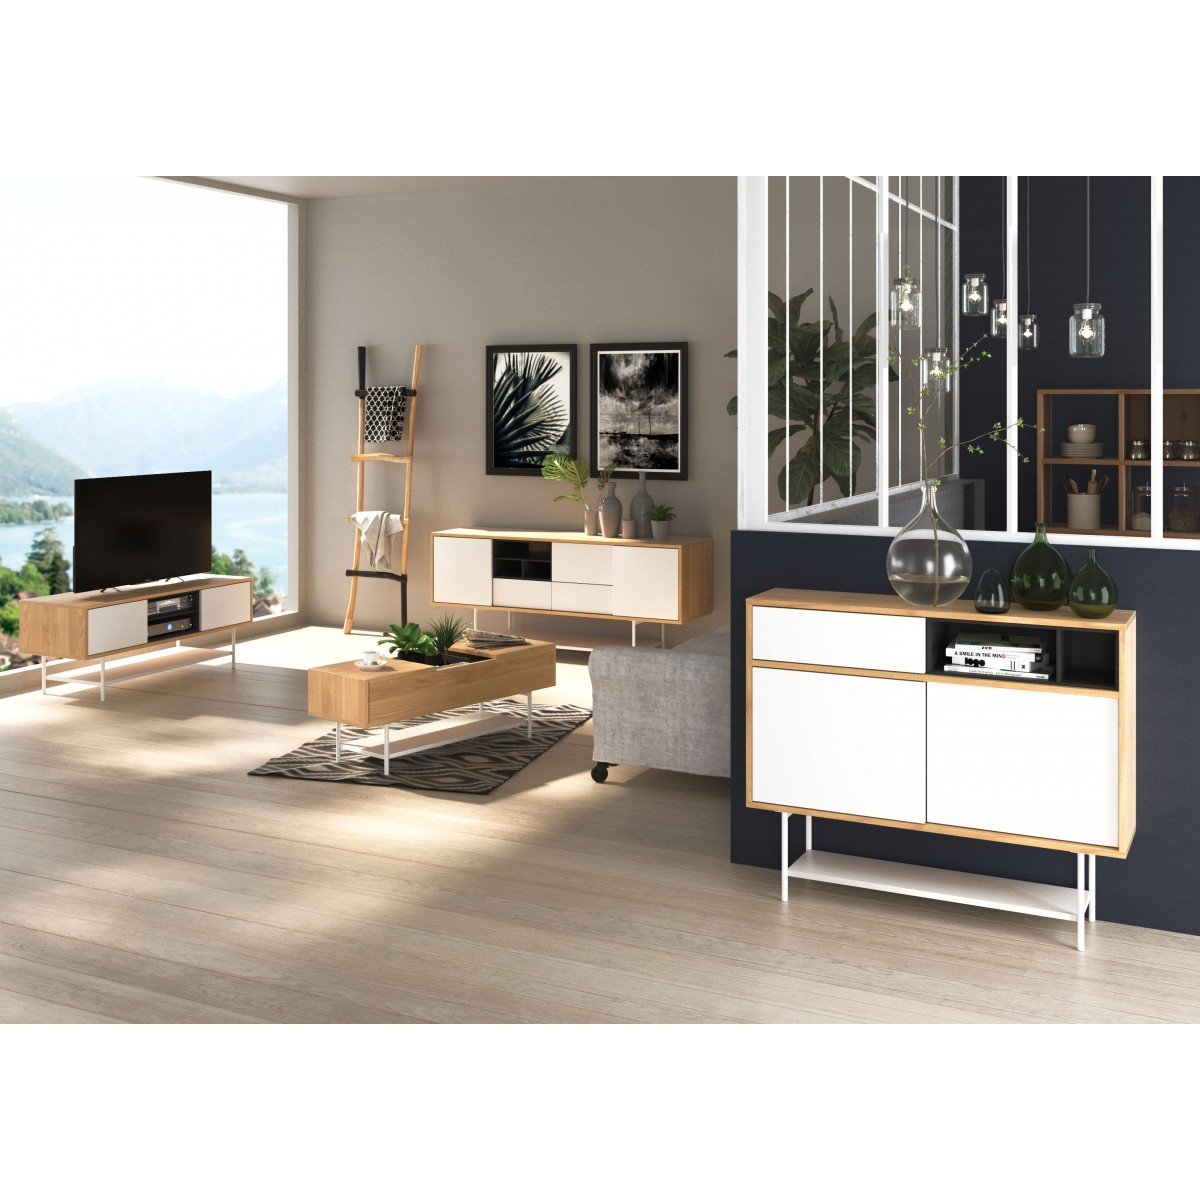 meuble tv style scandinave 2 portes coulissantes plaqu ch ne et laqu blanc esprit zago store. Black Bedroom Furniture Sets. Home Design Ideas